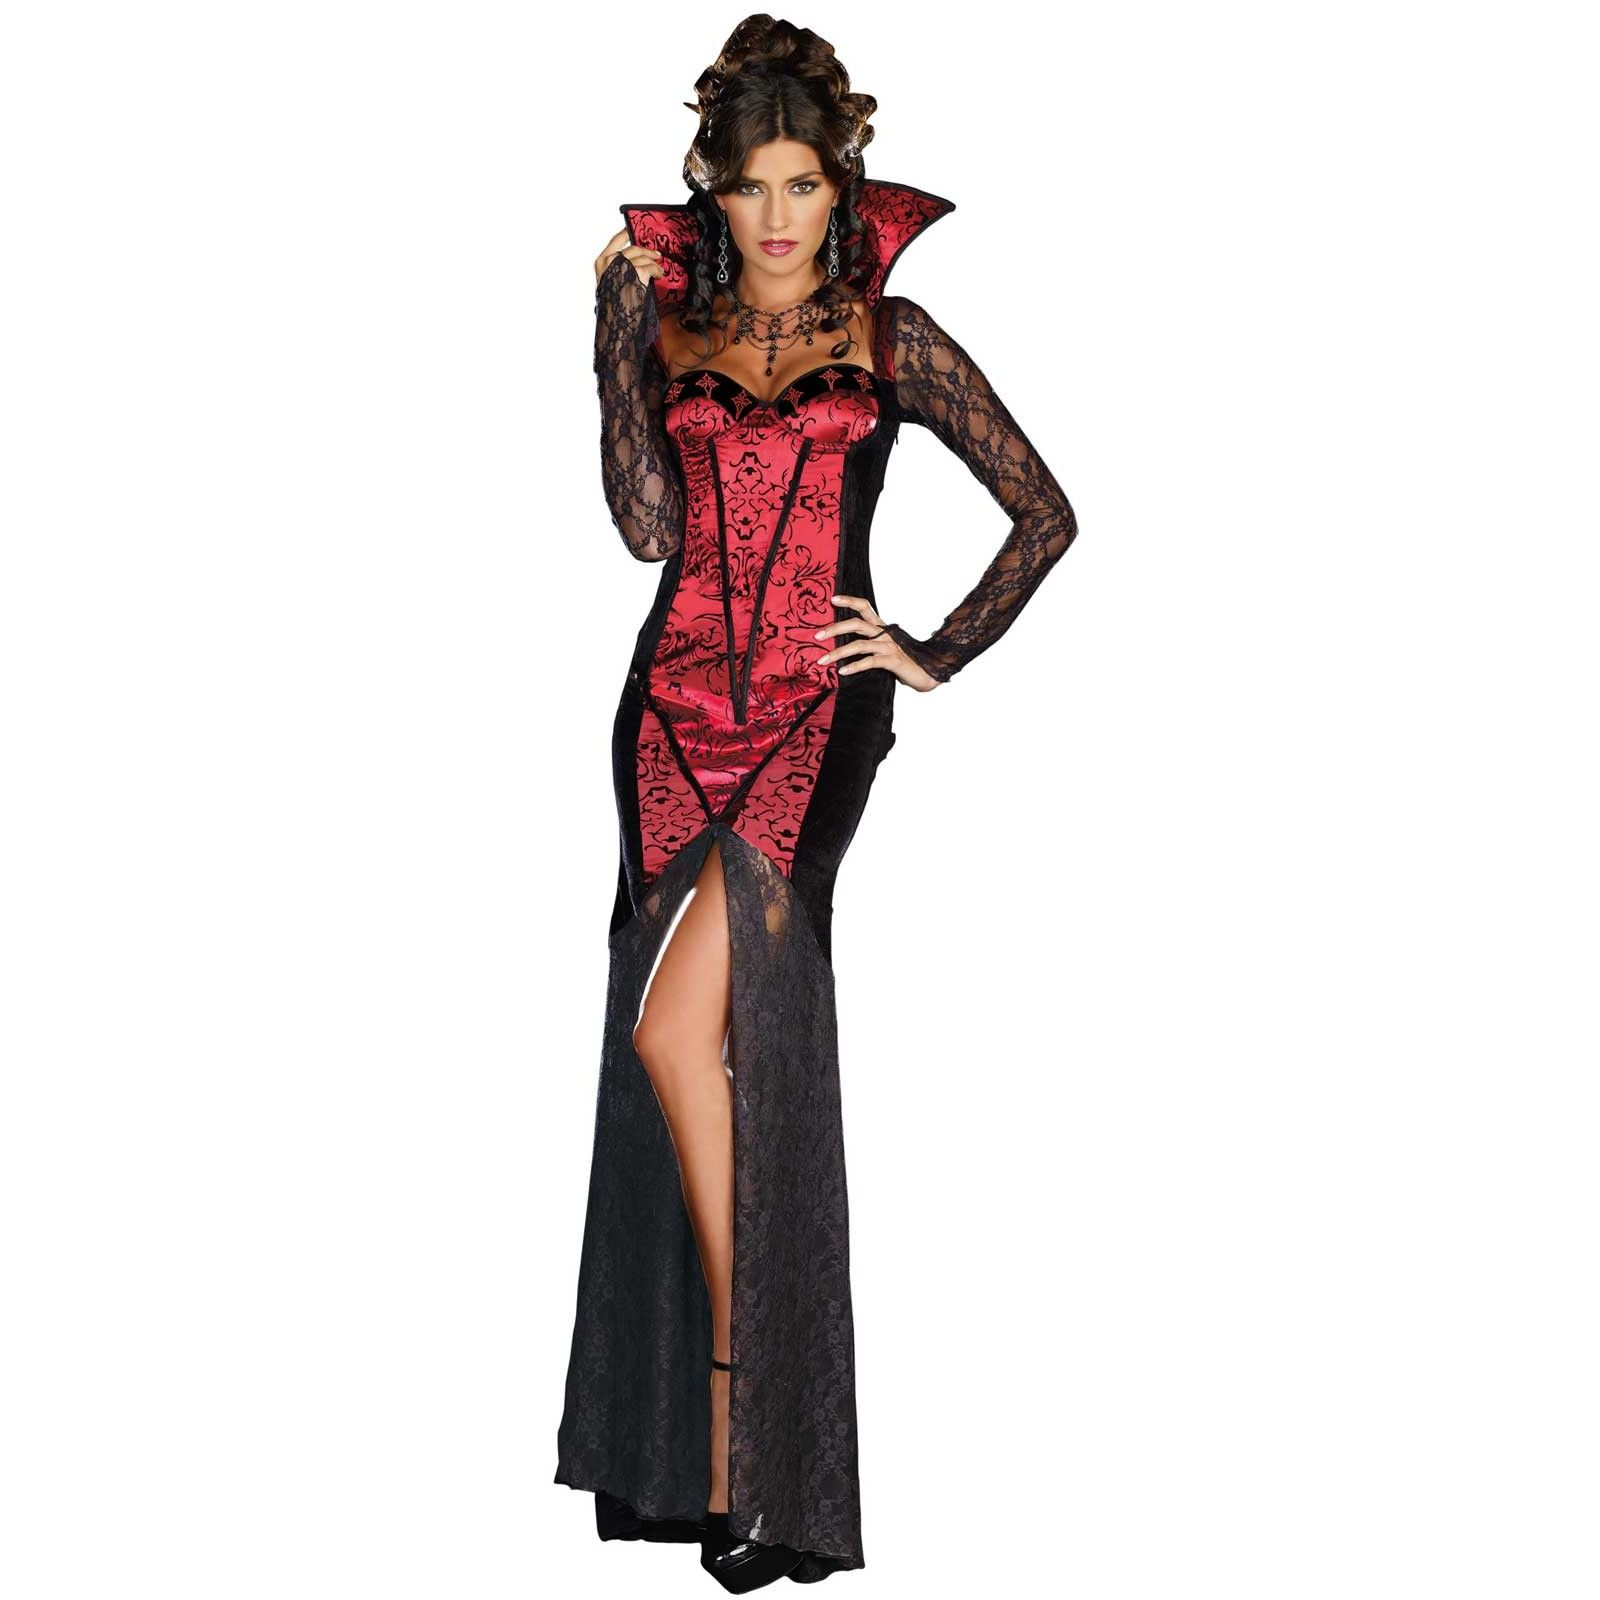 Just One Bite Female Adult Costume | Costumes, Halloween costumes ...